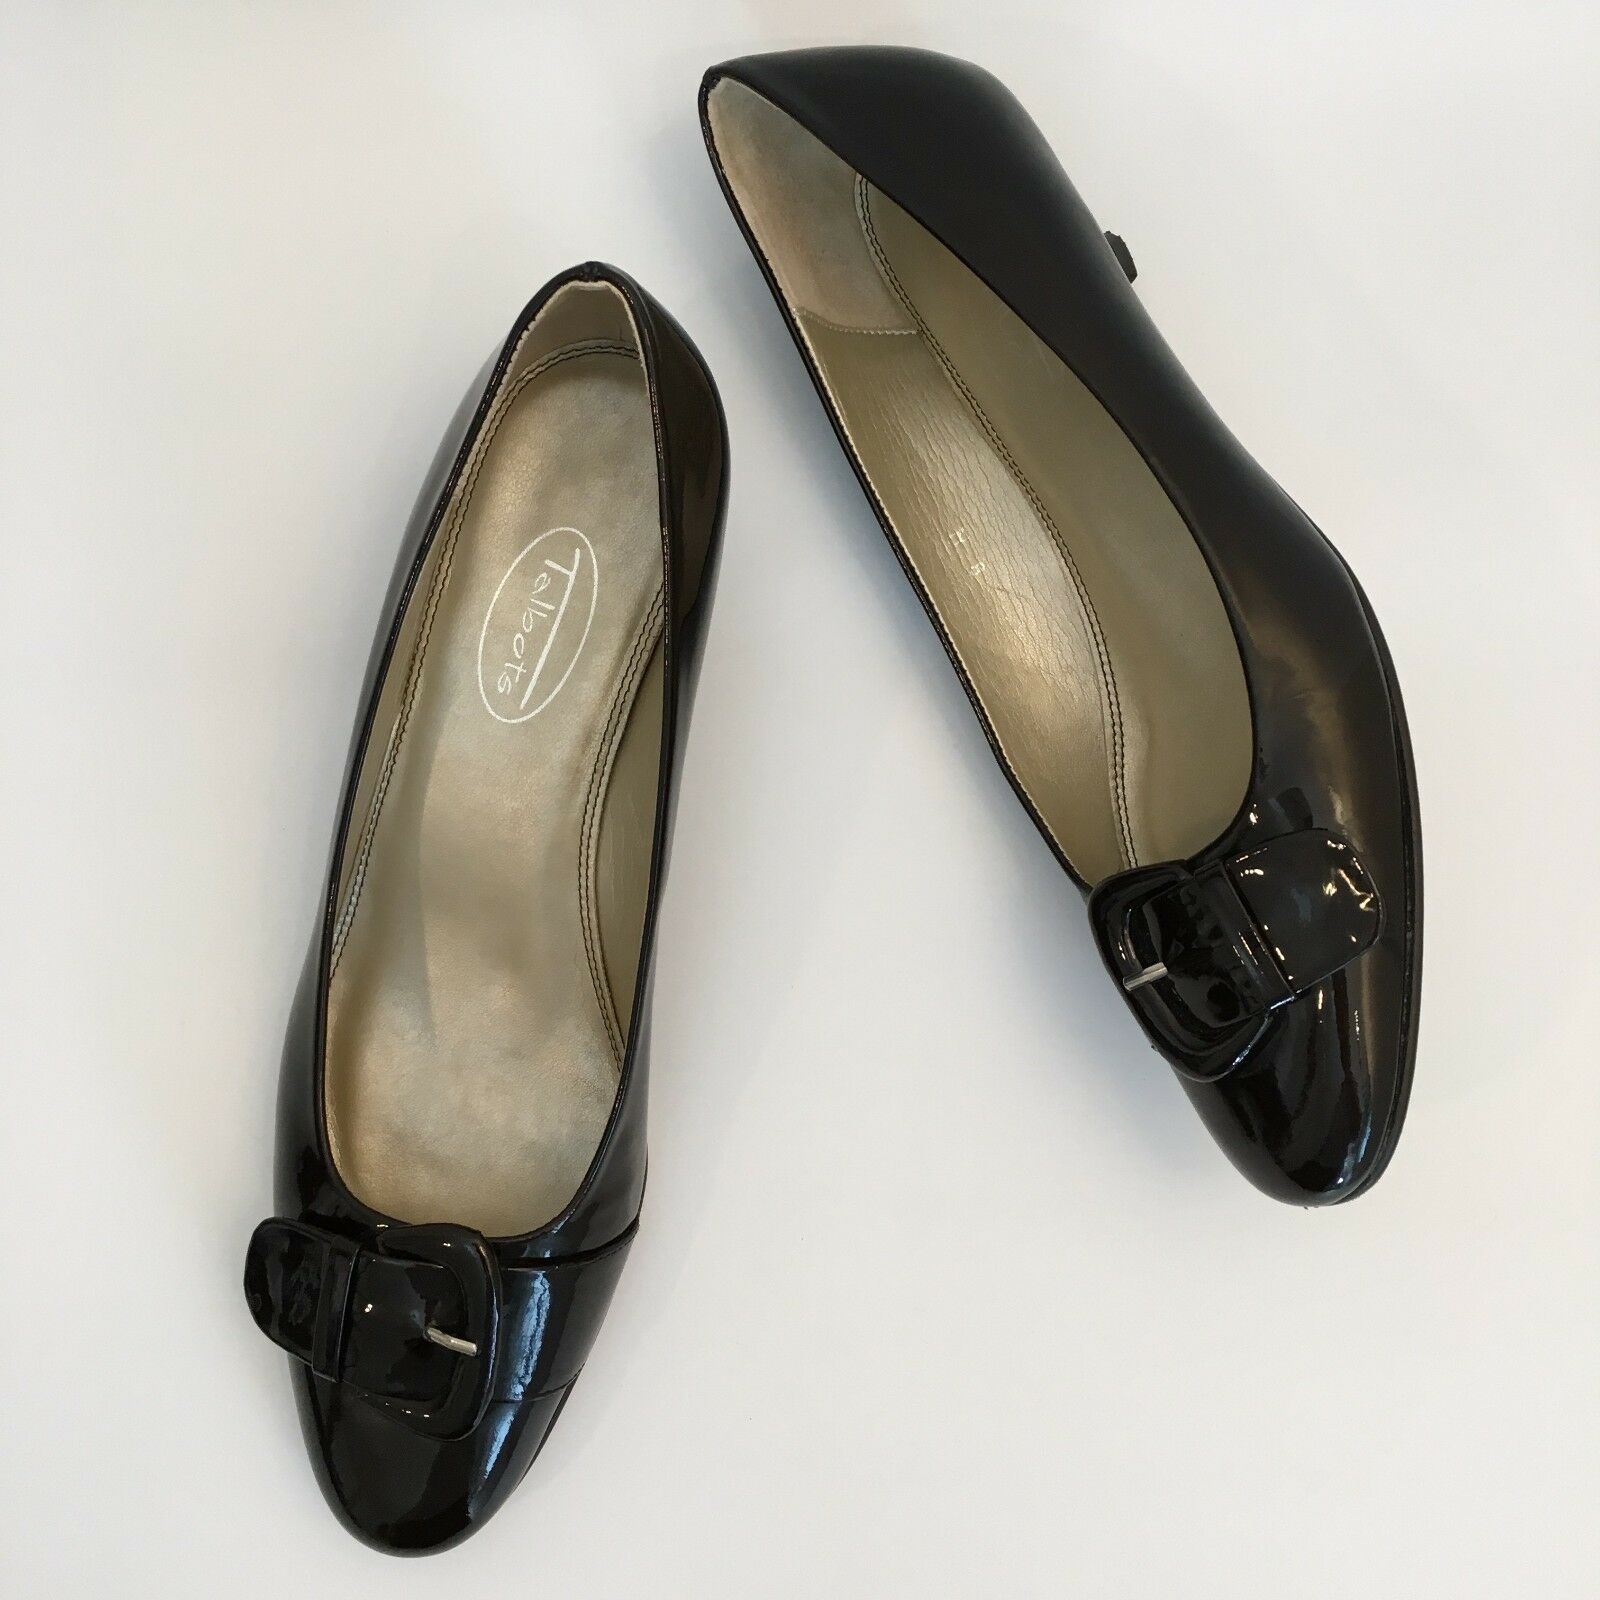 Talbots Size 8 N Dark Brown Leather Patent Leather Brown Kitten Heels Pumps Made in Spain c07b6b